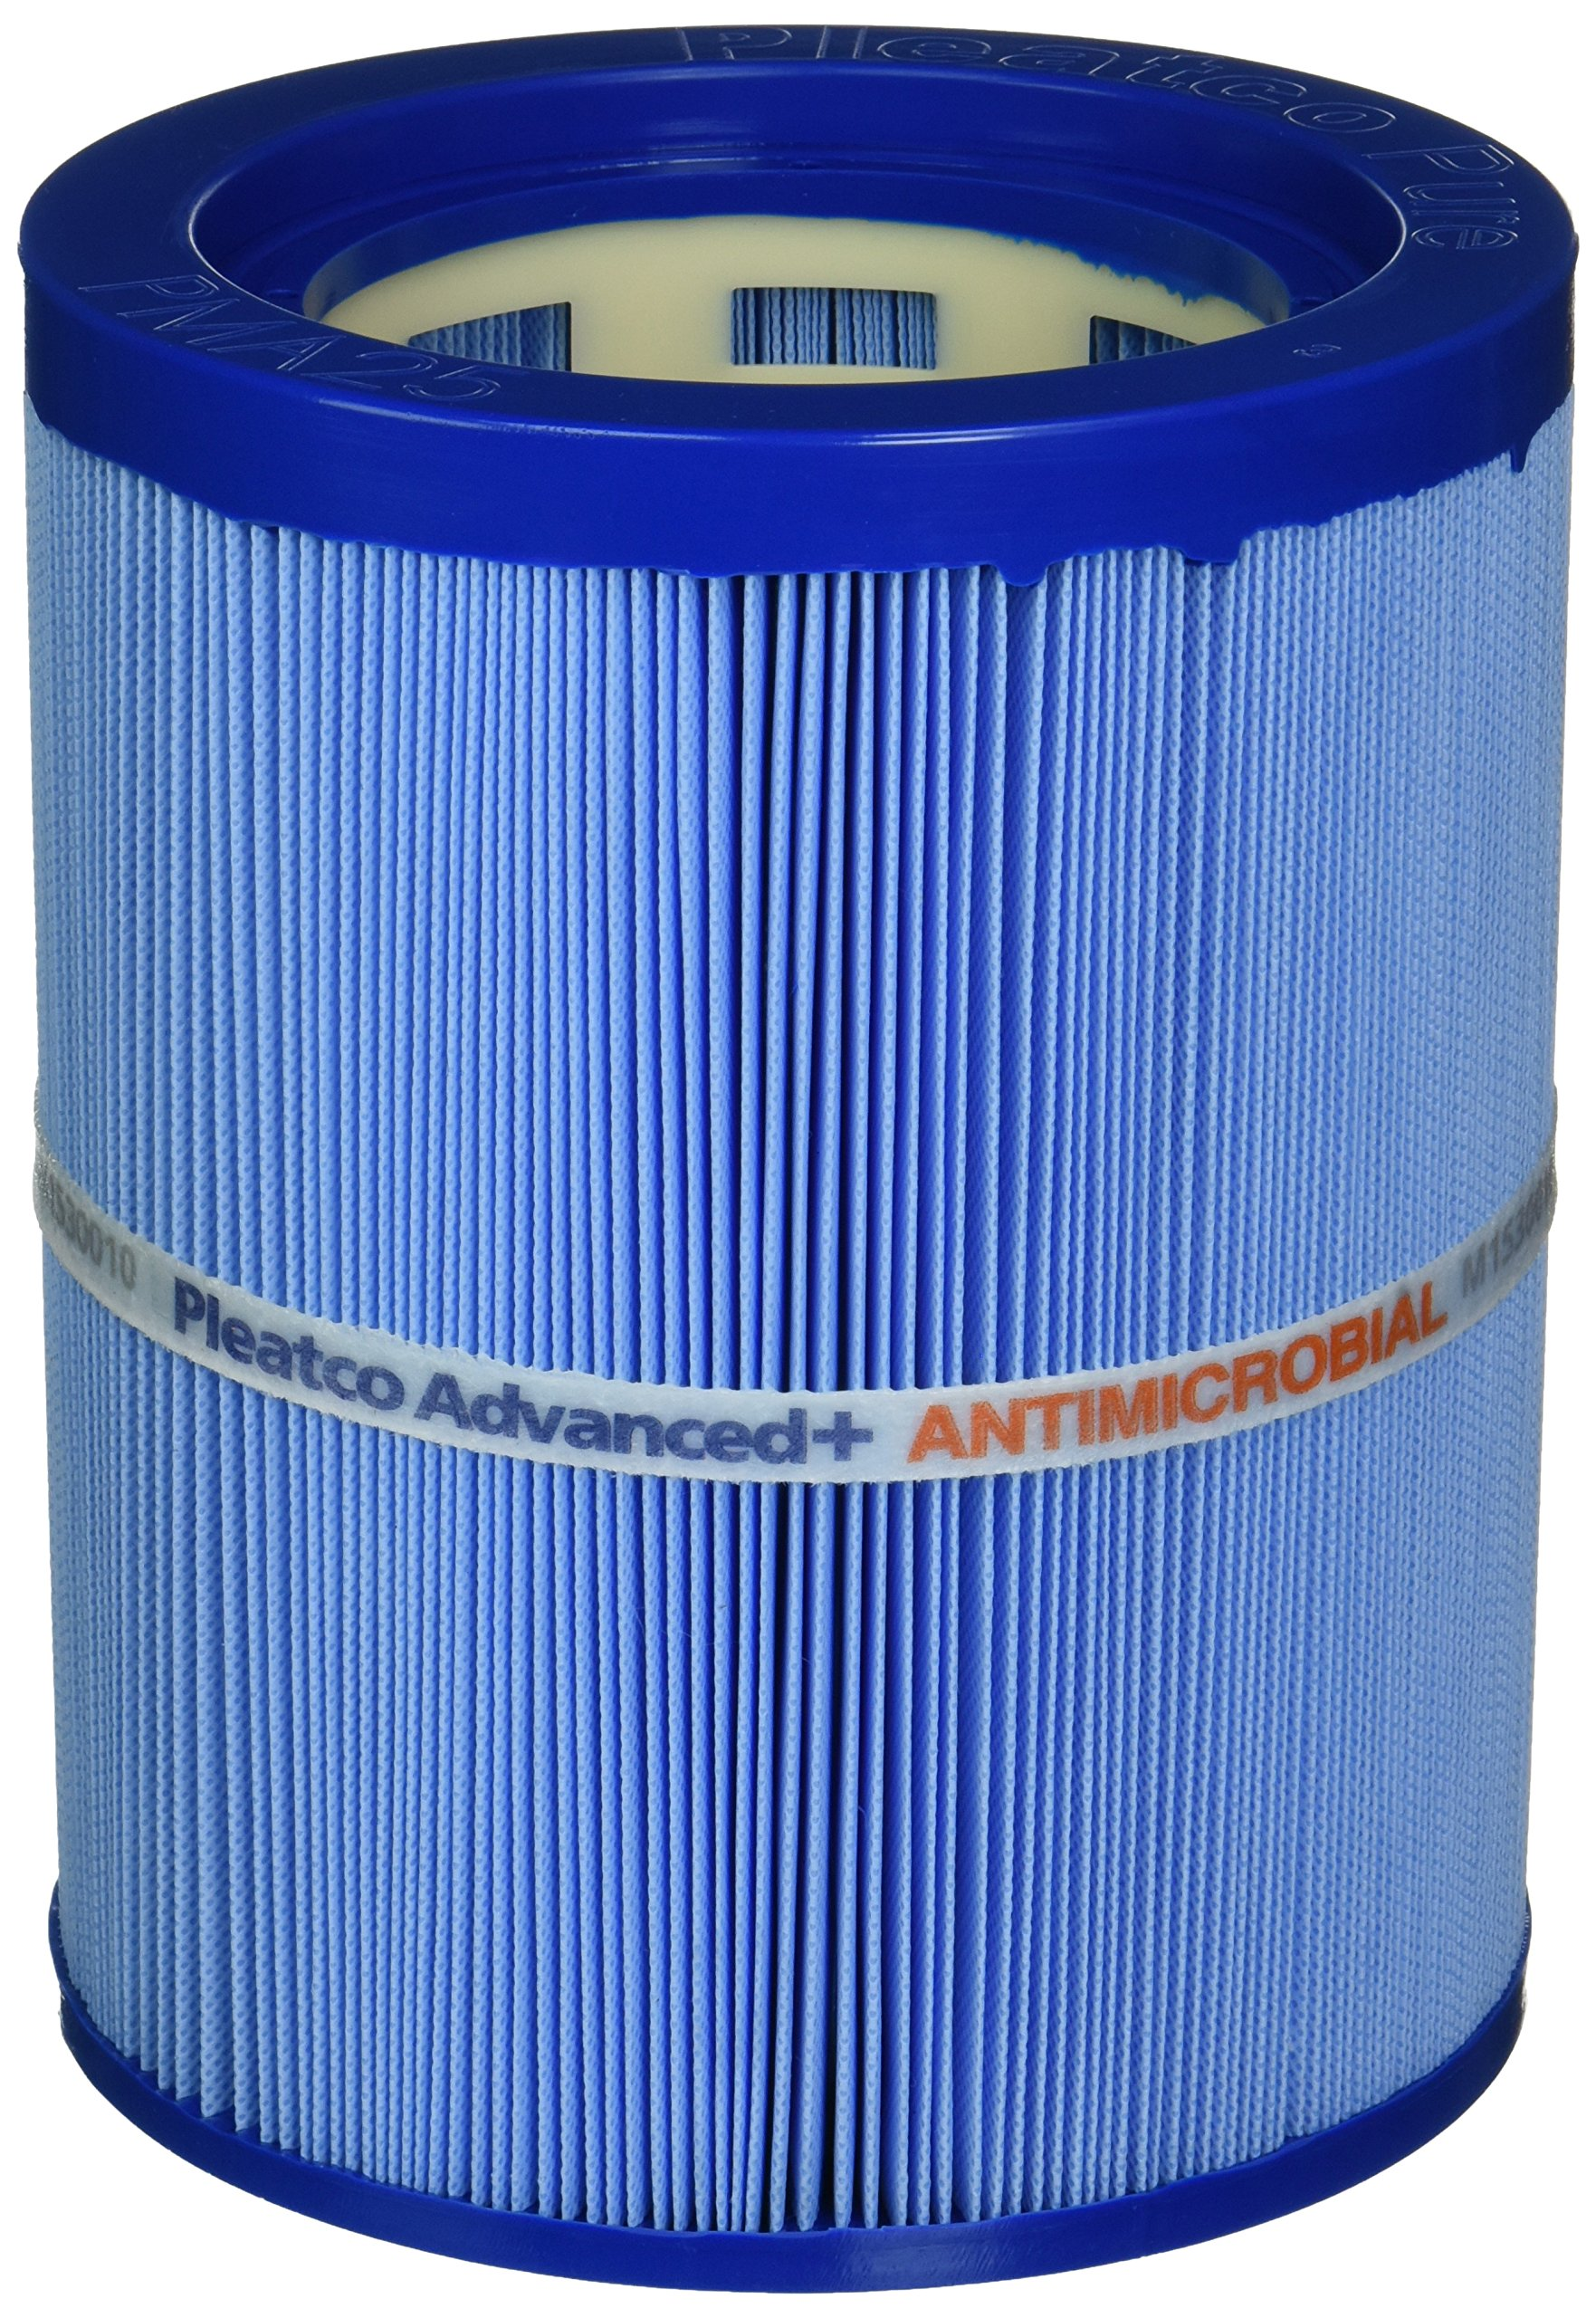 Pleatco PMA25-M Replacement Cartridge for OUTER MICROBAN Cartridge For Nested System (PMA-PROPAK2), 1 Cartridge by Pleatco